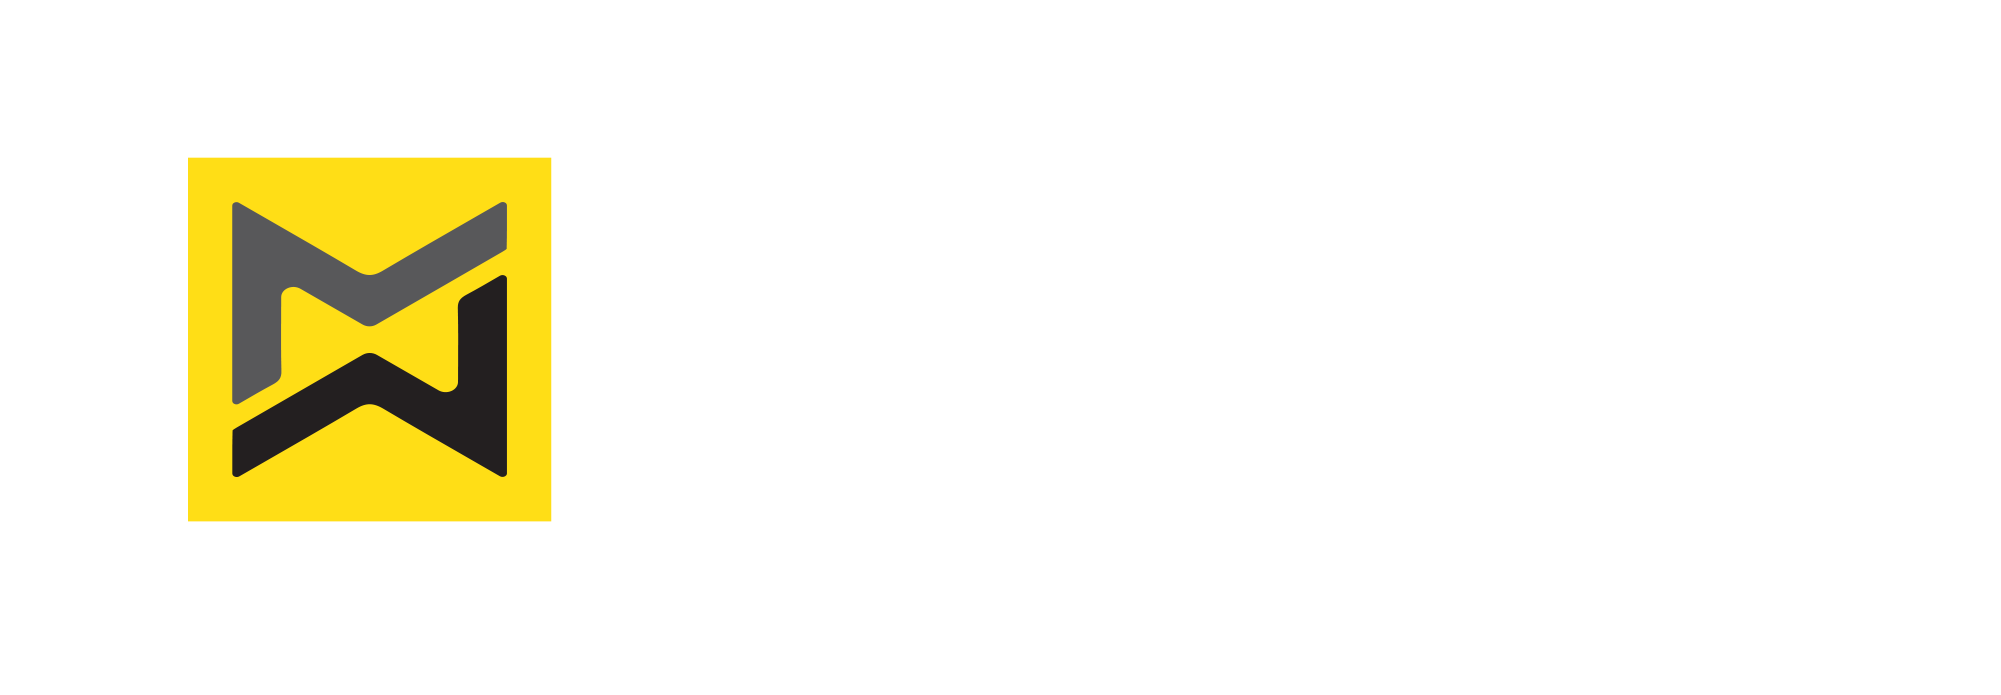 Michael Weaver For Judge